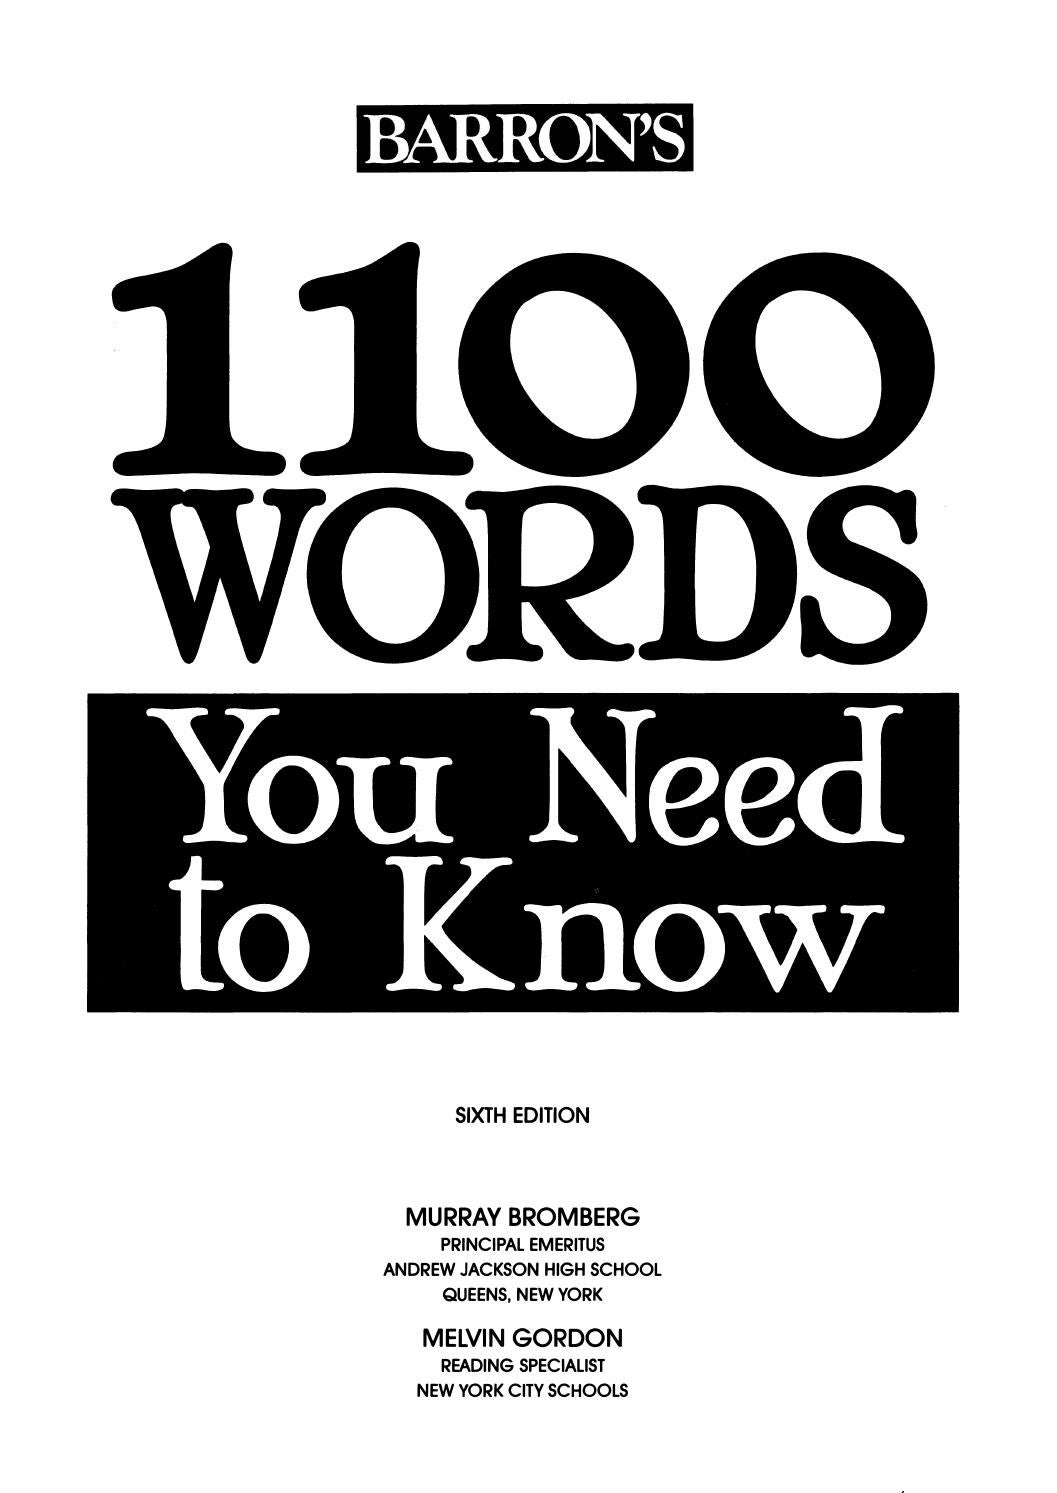 Preview 1100 words you need to known 6th by tusachduhoc